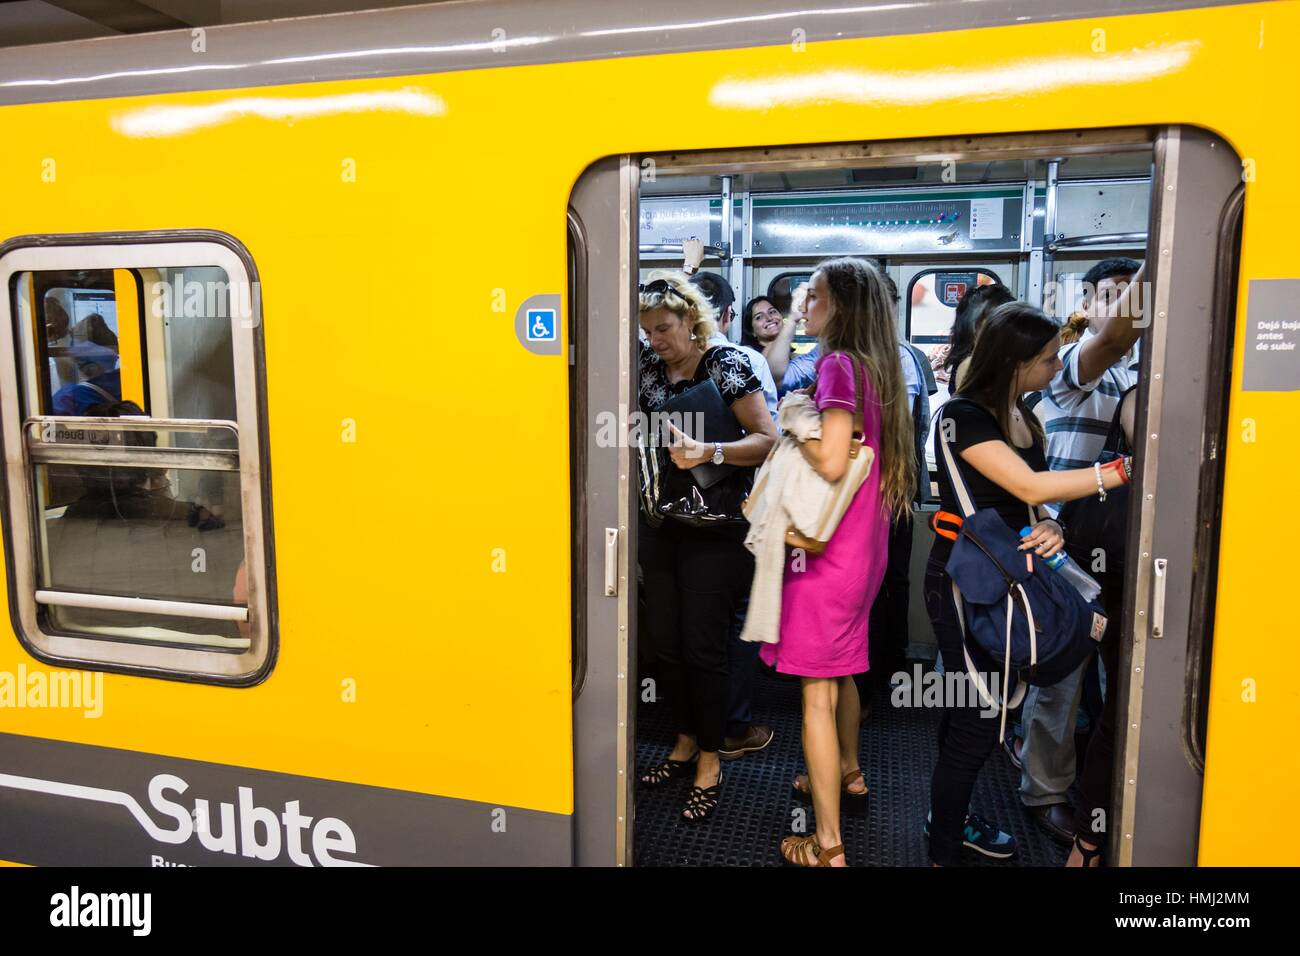 Undergroung (locally known as Subte) station, Buenos Aires, Argentina - Stock Image